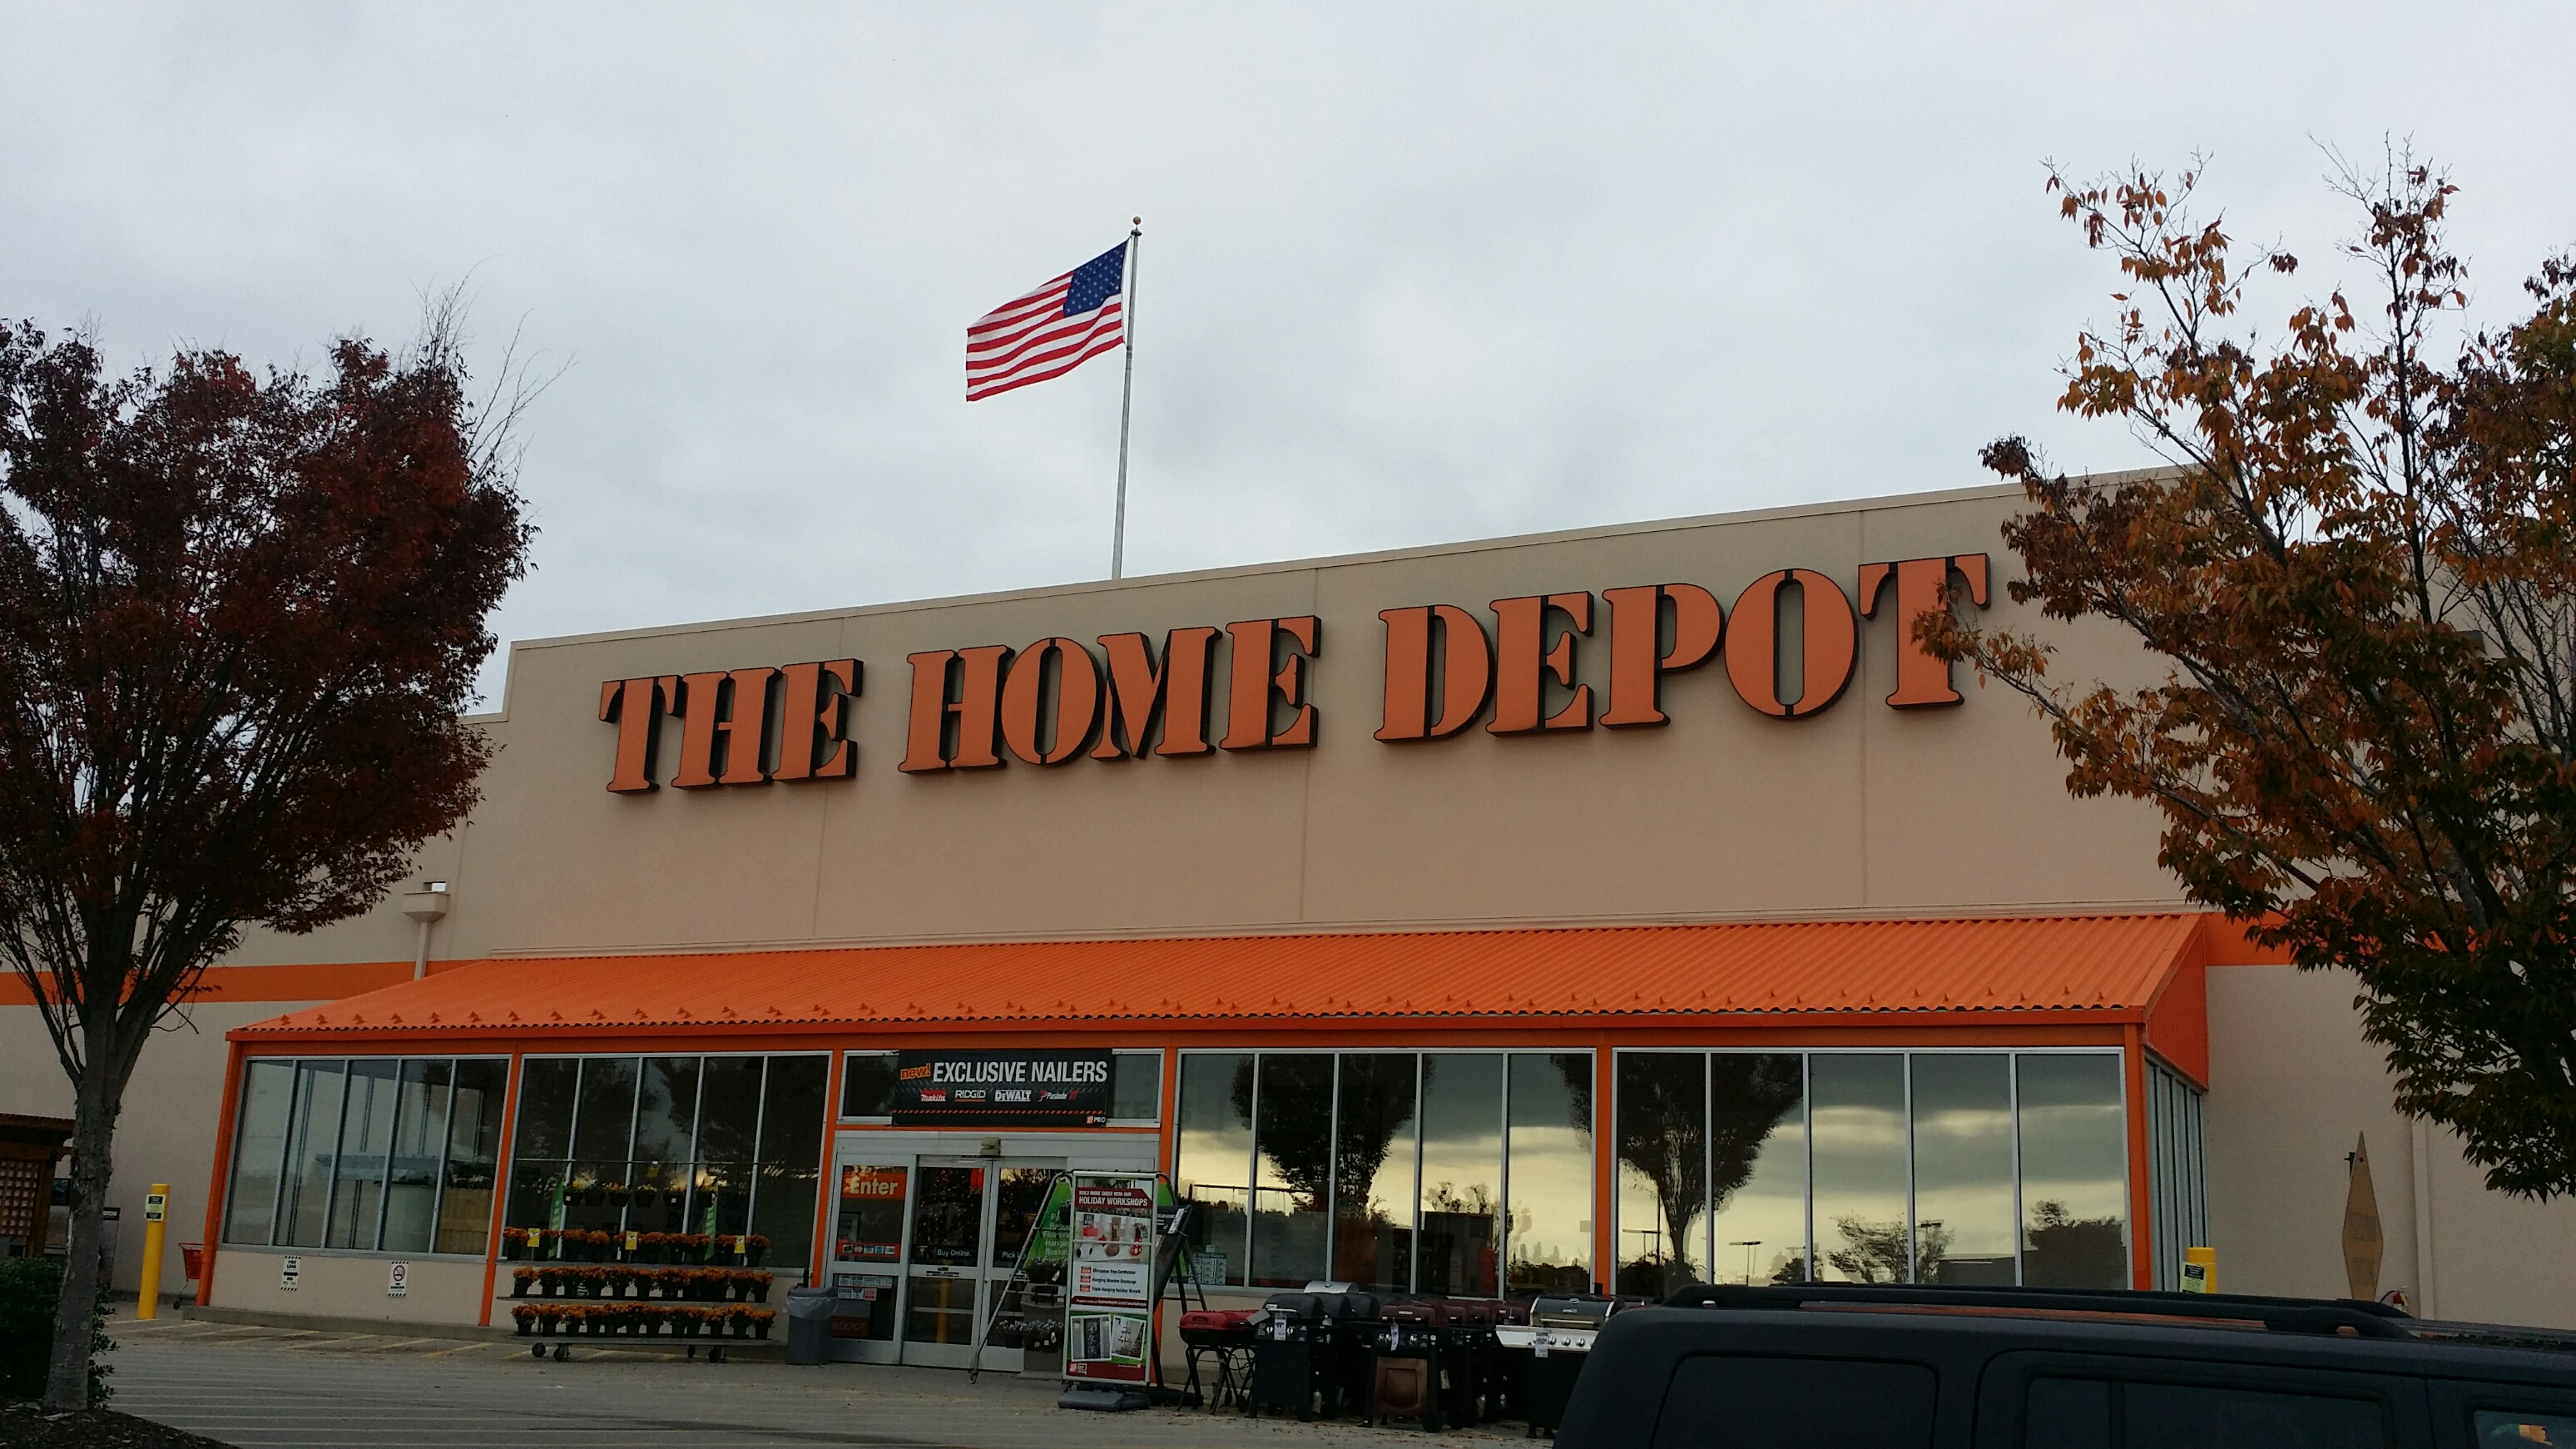 The Home Depot 351 Seville Street Florence, AL Home Depot - MapQuest